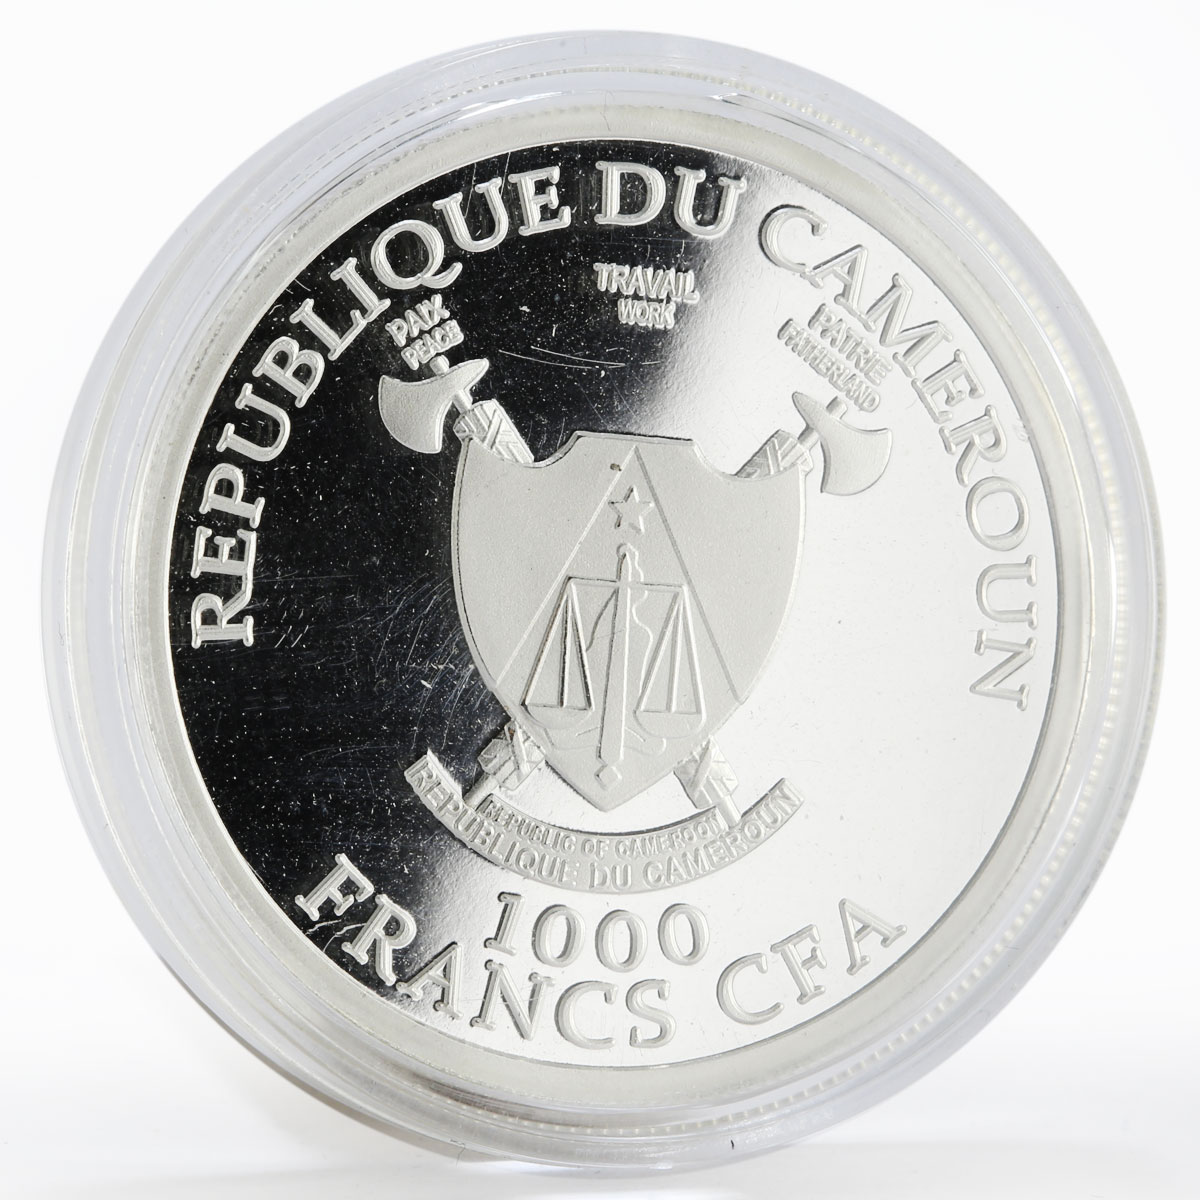 Cameroon 1000 francs World Cup Soccer 2018 Petersburg proof silver coin 2017